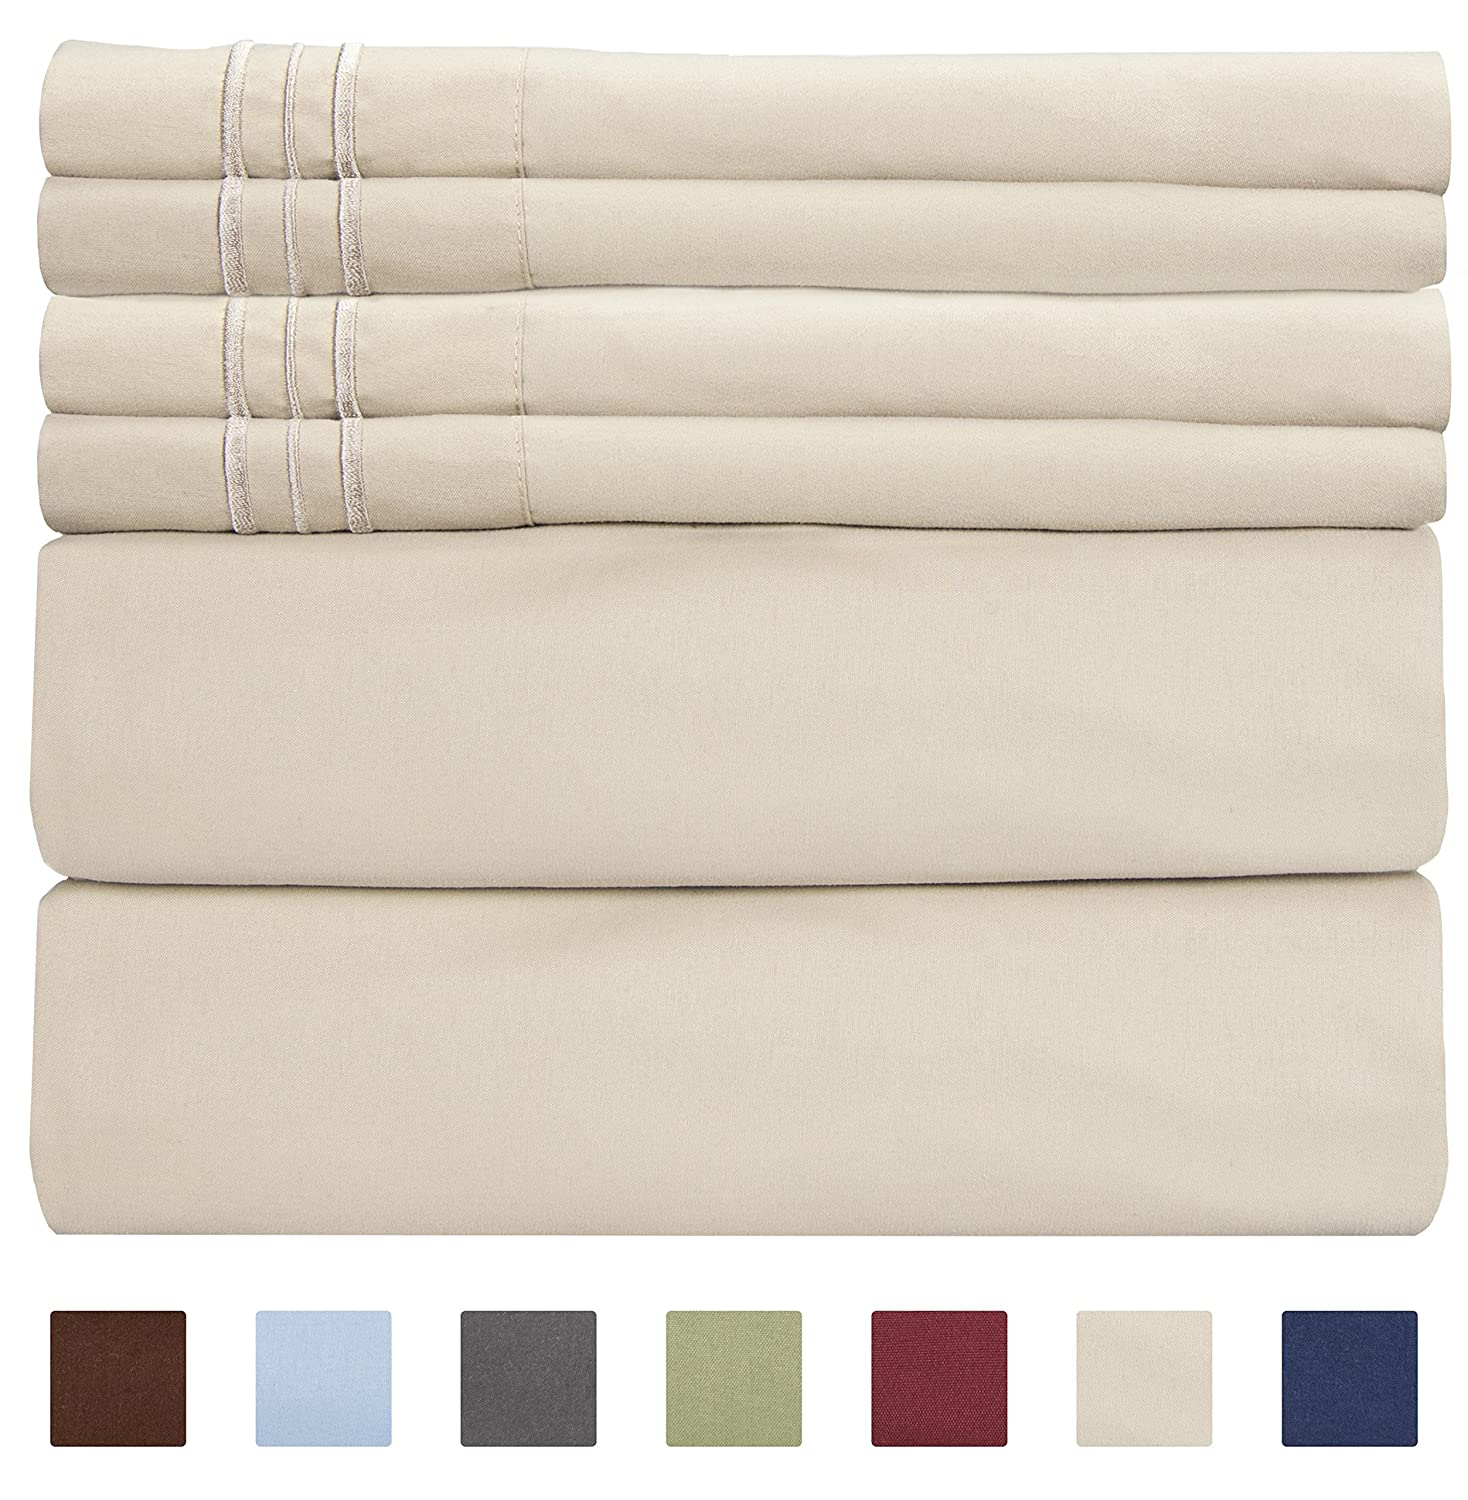 Full Size Sheet Set - 6 Piece Set - Hotel Luxury Bed Sheets - Extra Soft - Deep Pockets - Easy Fit - Breathable & Cooling Sheets - Wrinkle Free - Comfy - Beige Tan Bed Sheets - Fulls Sheets - 6 PC